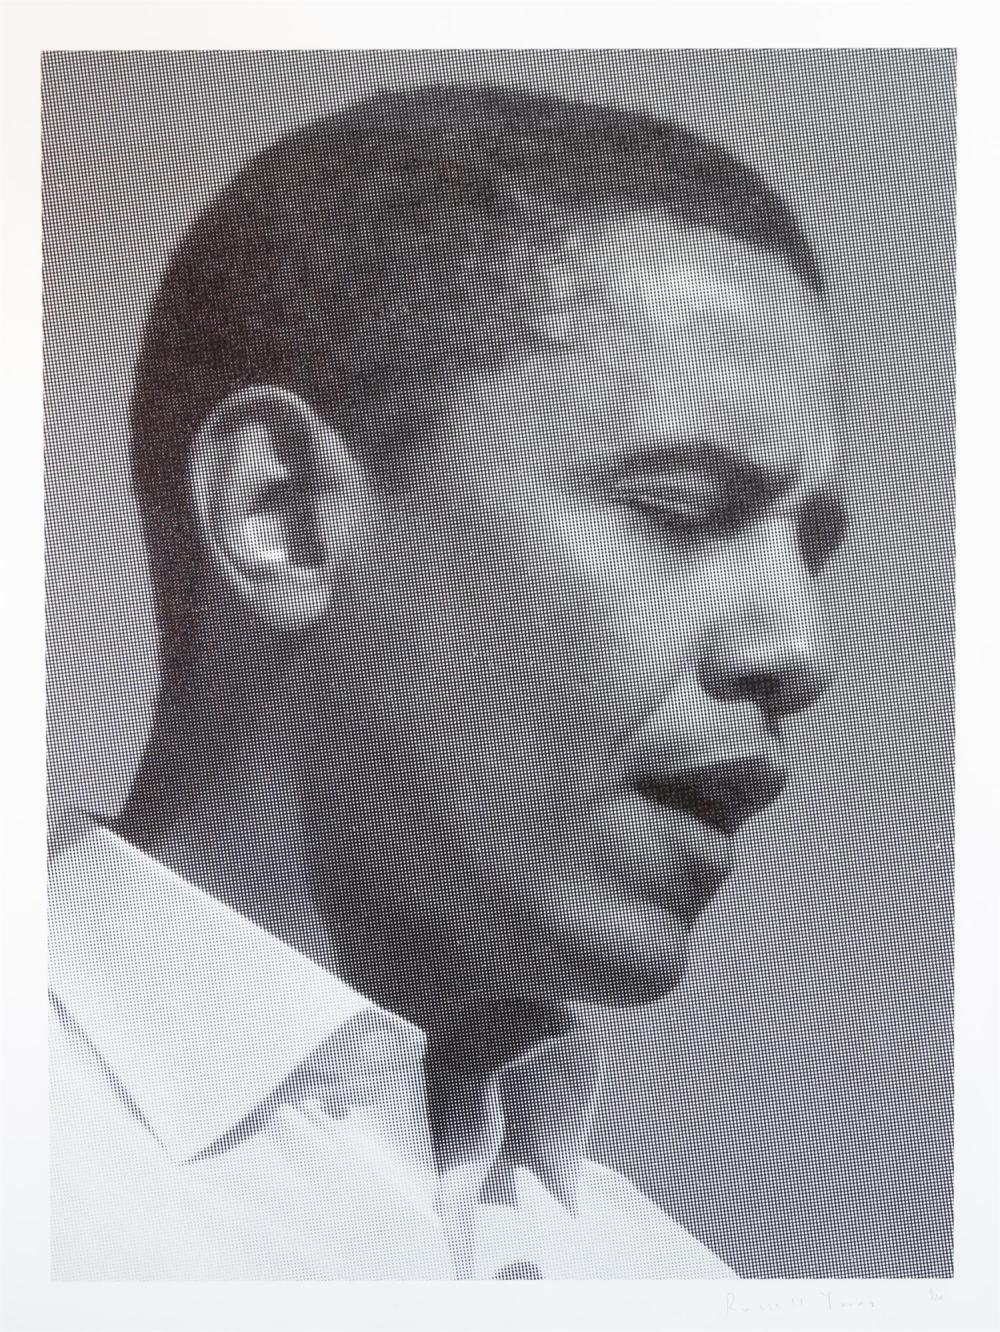 Russell Young, New York/England (b. 1960), Barack Obama, 2008, screenprint, ed. 8/20, 45 x 35 inches